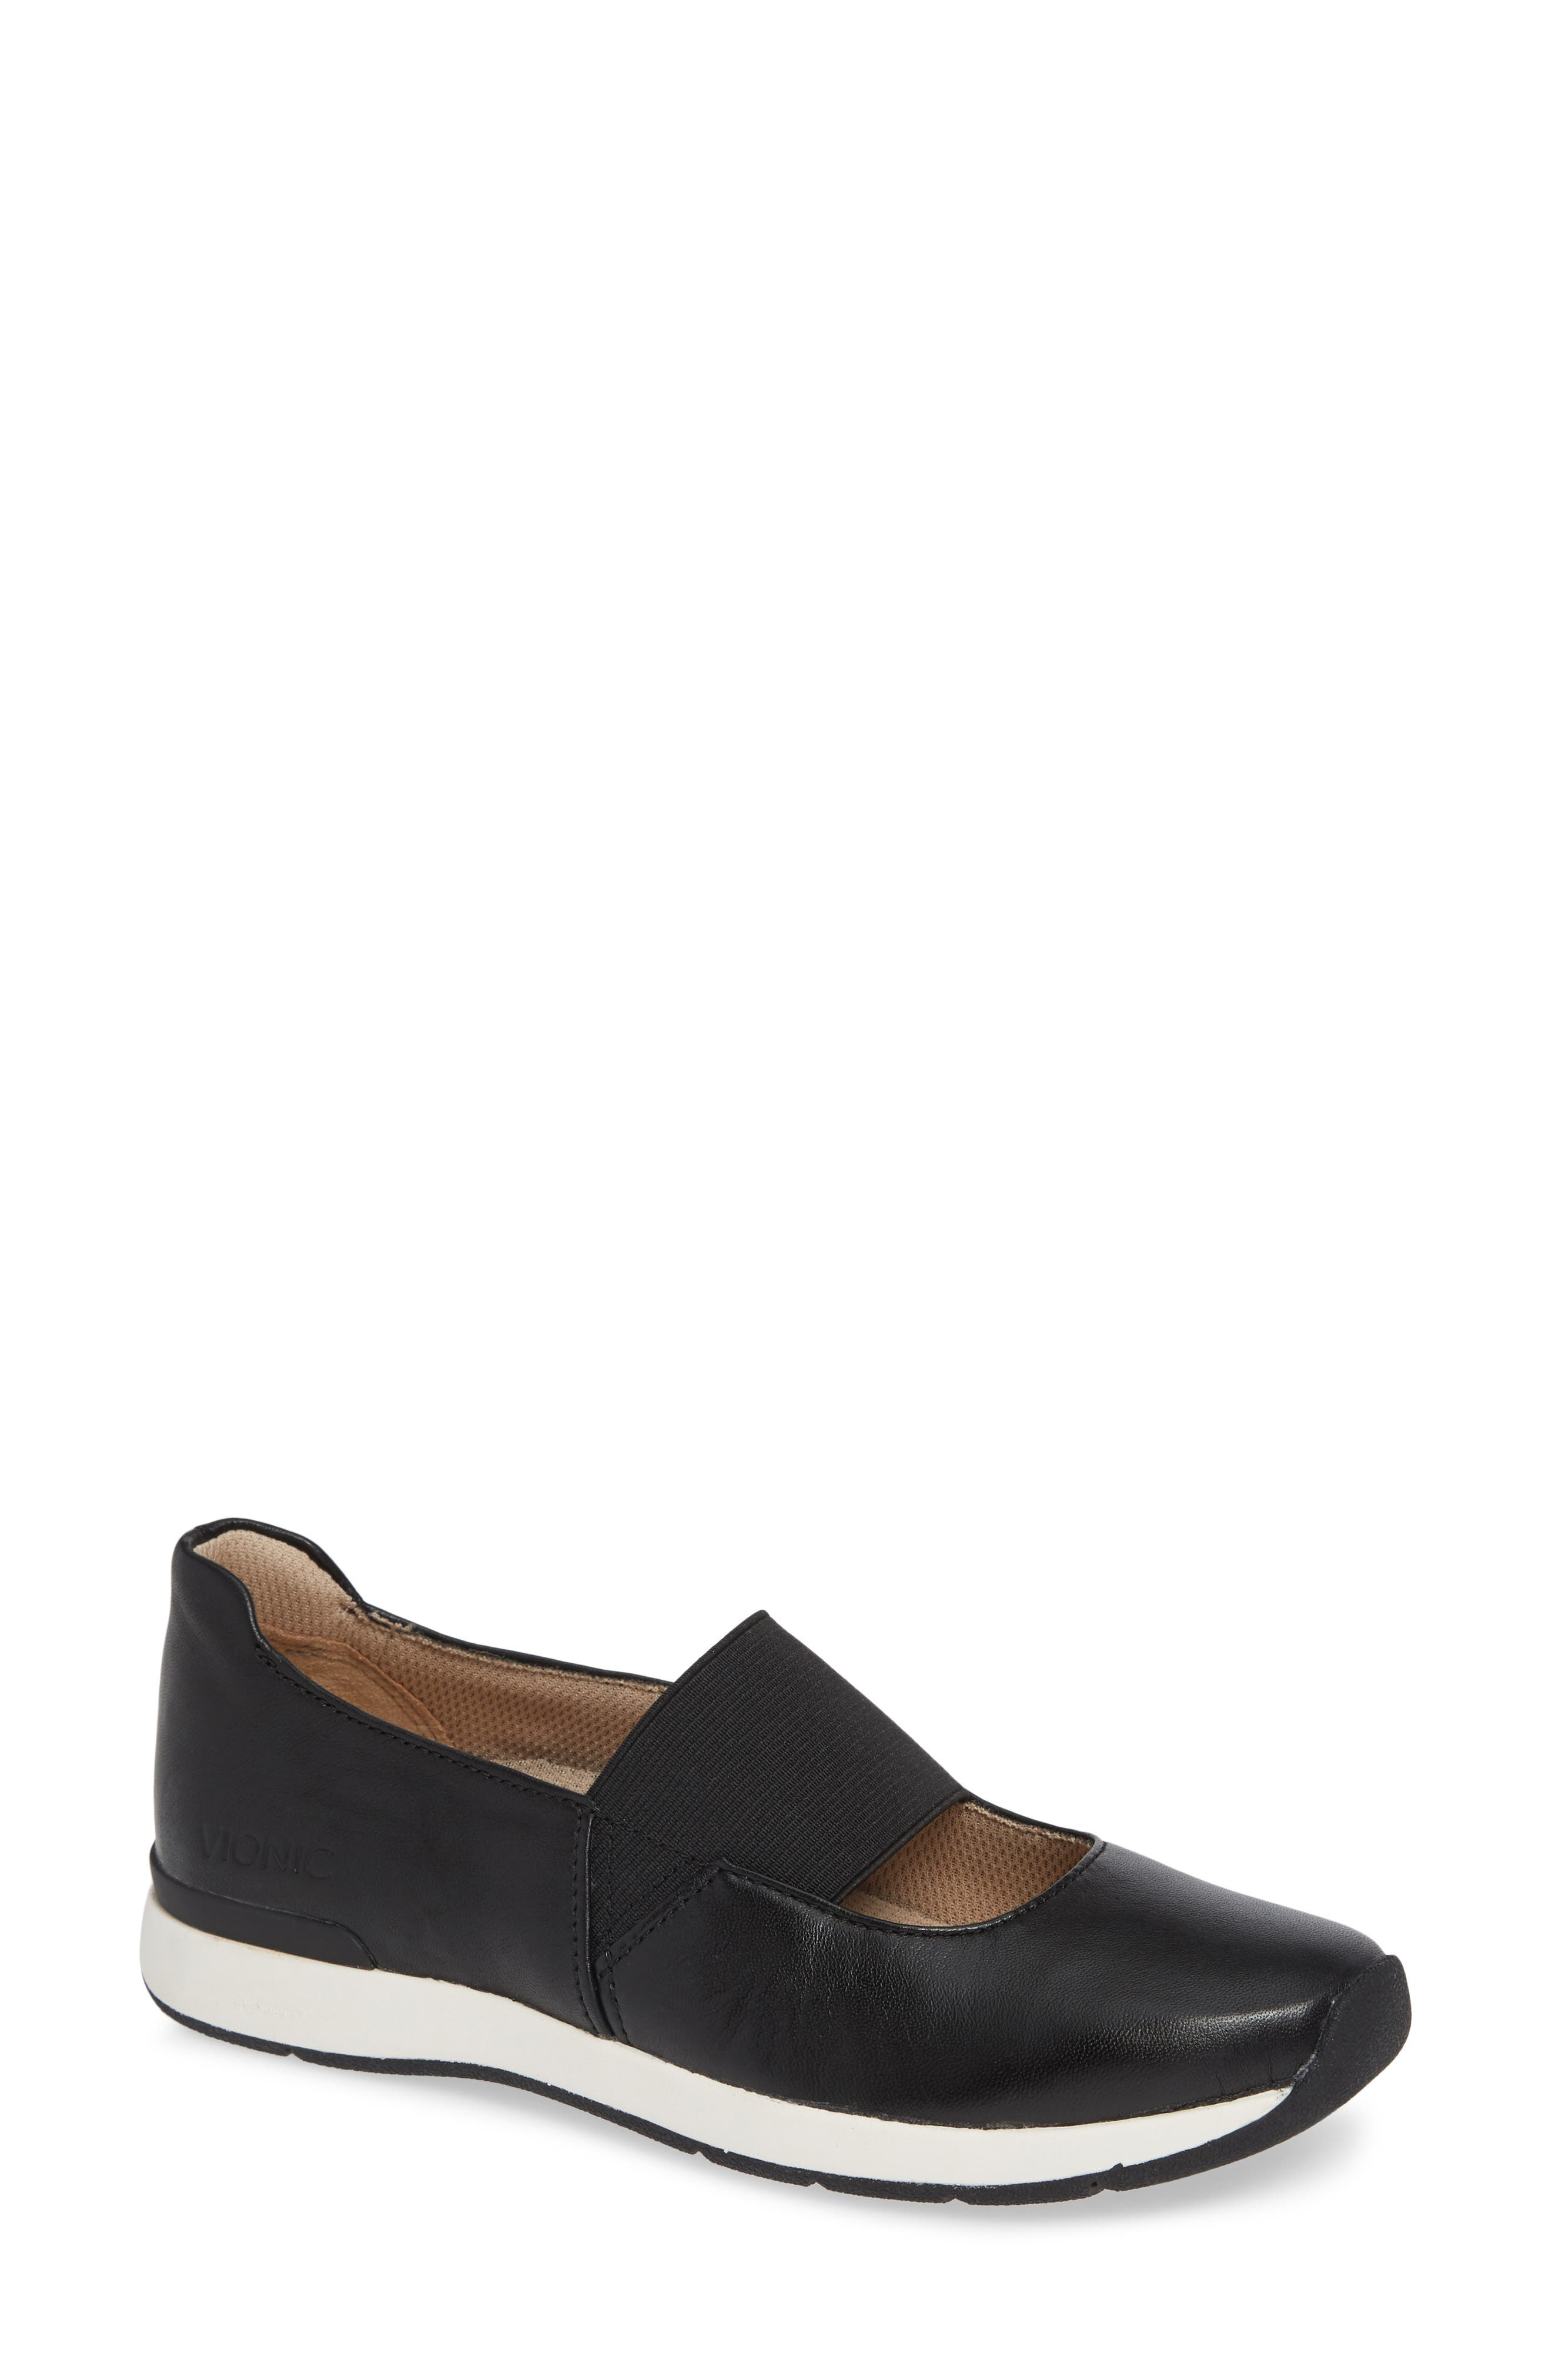 Cadee Flat,                         Main,                         color, BLACK LEATHER